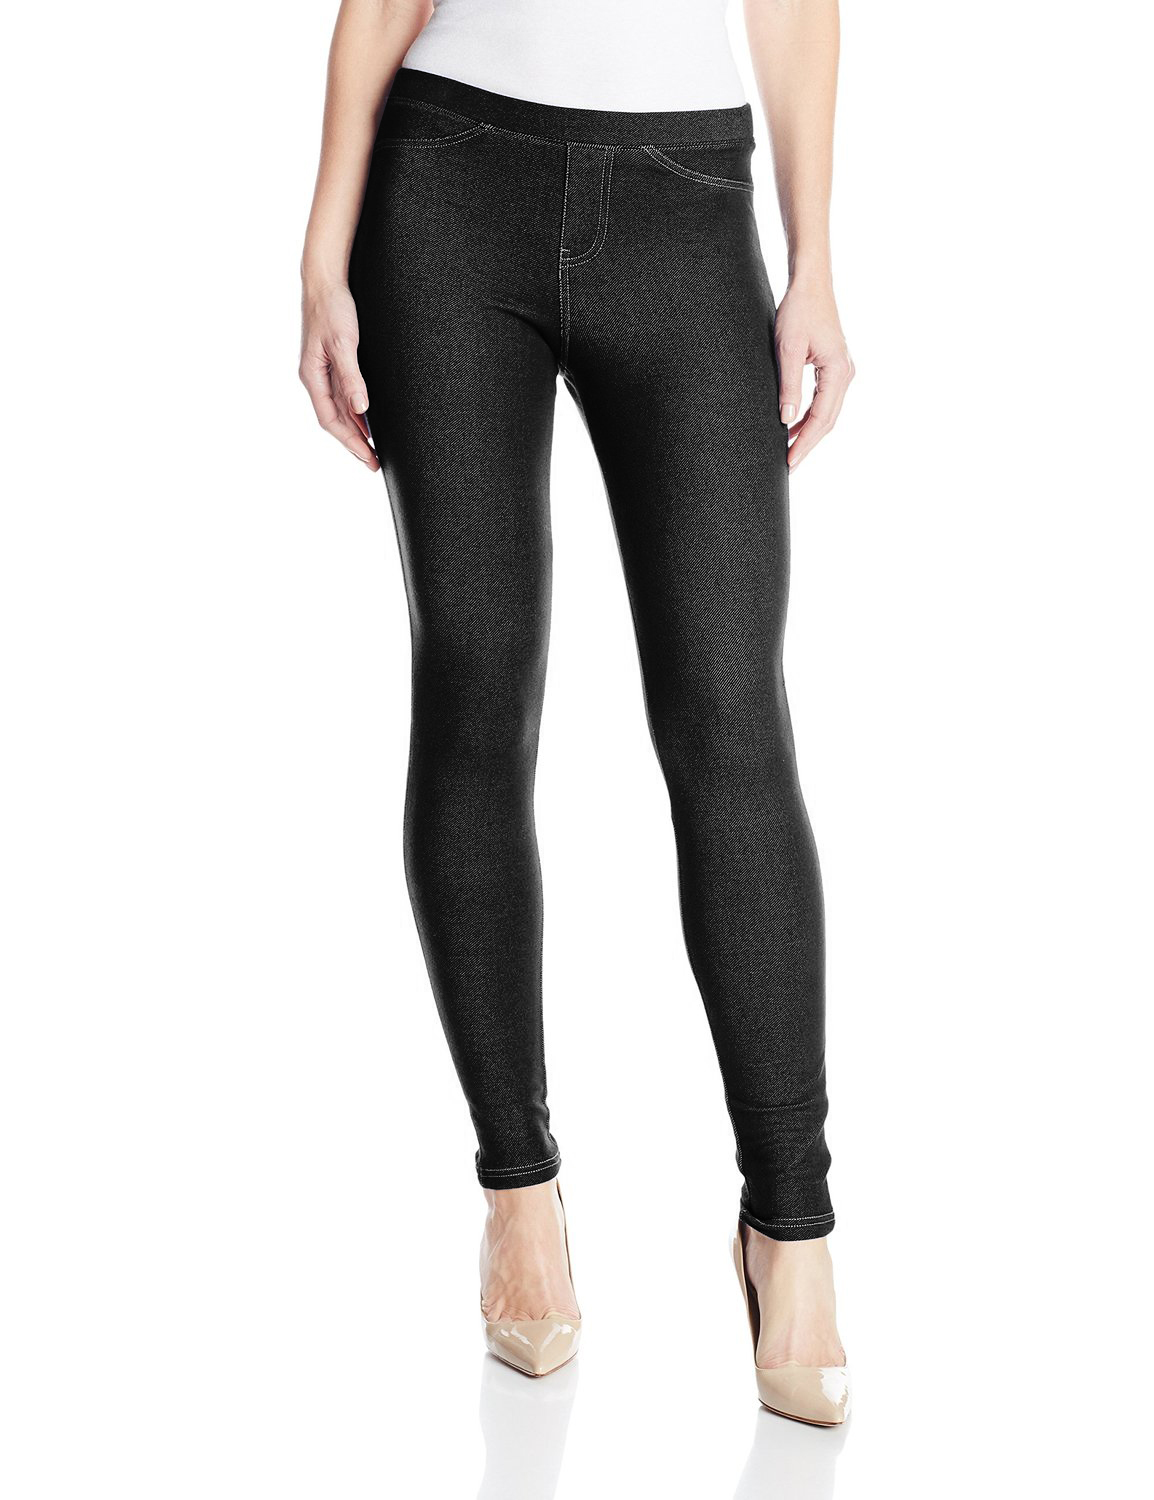 Jeggings, on the other hand, are leggings that are designed to look like skinny denims. Unlike leggings that are commonly used to refer to stretchable slacks, 'jeggings' is a patent name registered by Turkish textile company ISKO who are also original producers of jeggings.